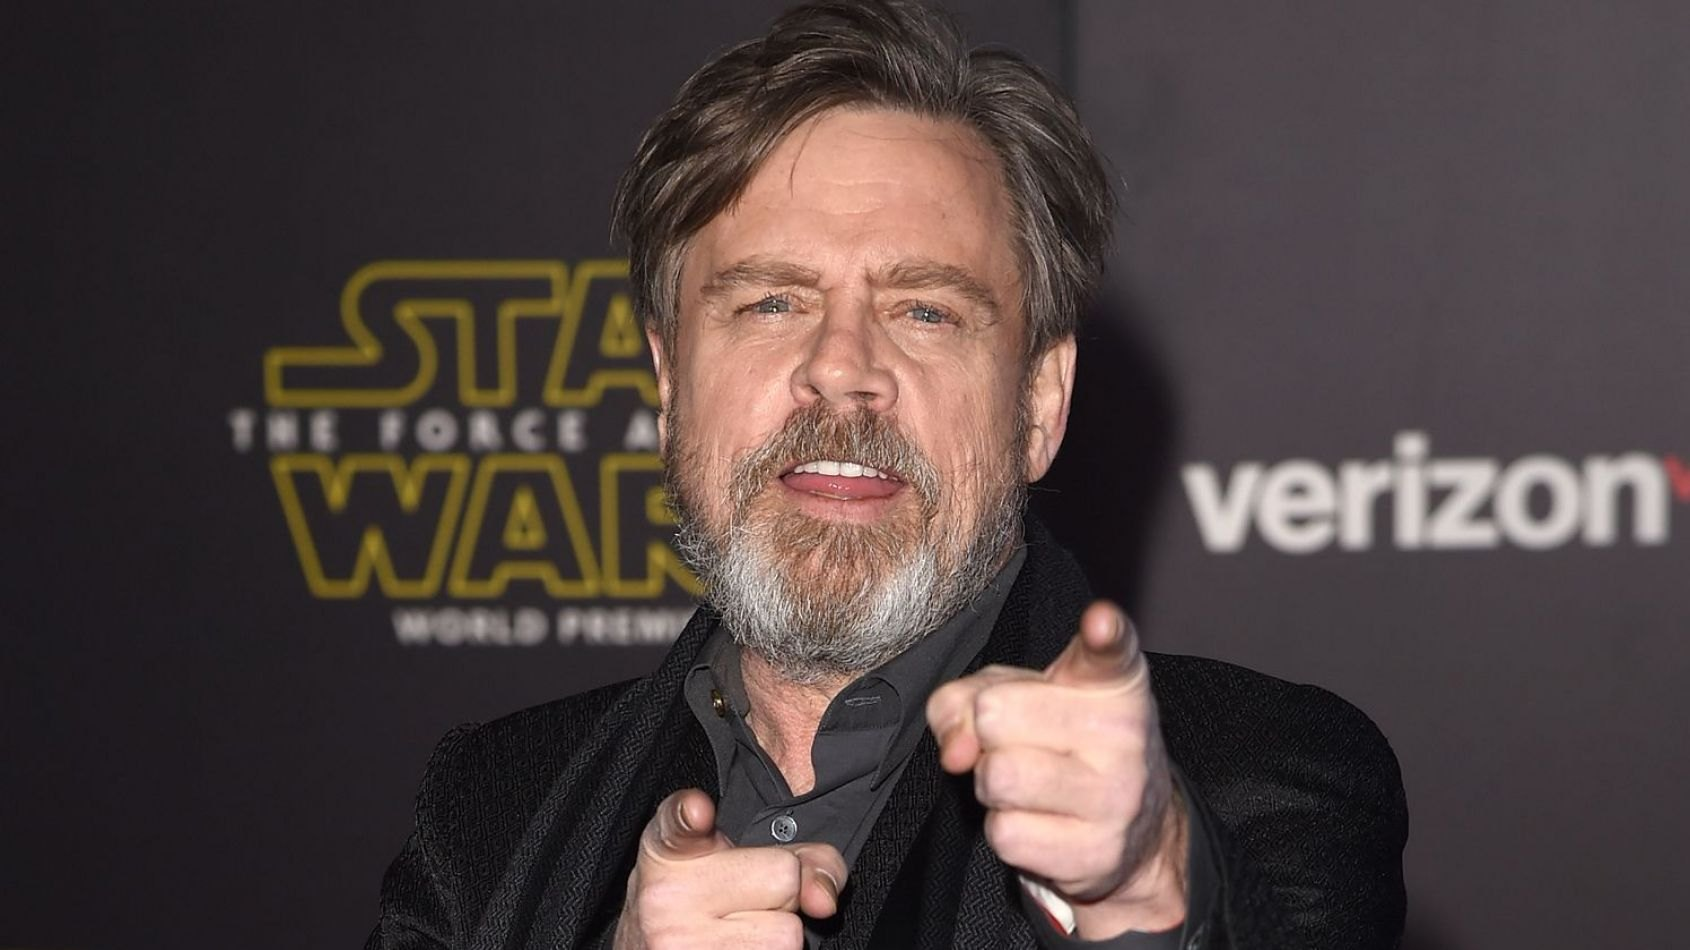 Mark Hamill surprend les fans dans une attraction à Disneyland